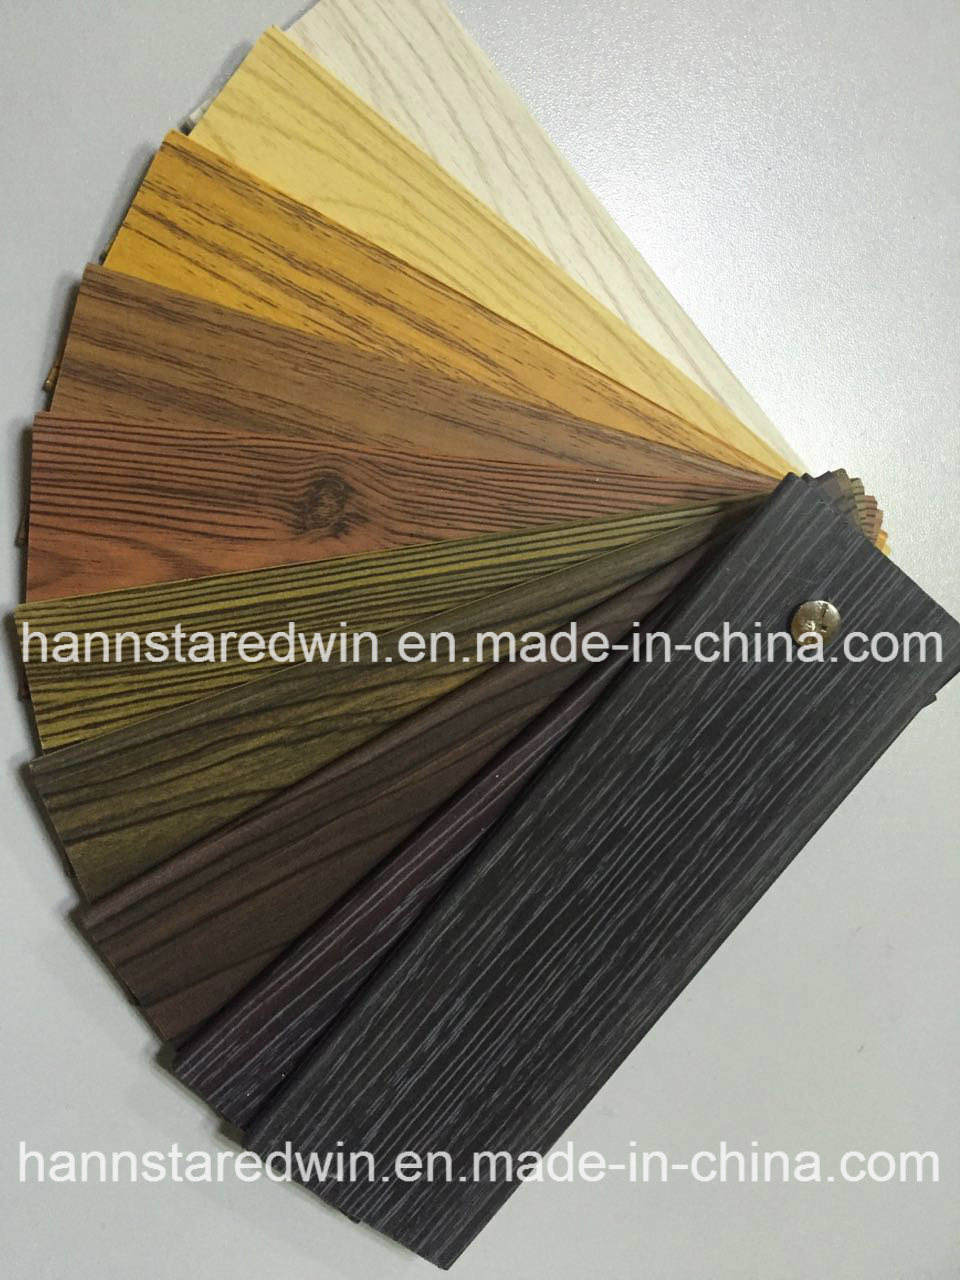 Outdoor&Interior PVC (PVC composite decorative board) Wainscot Boards